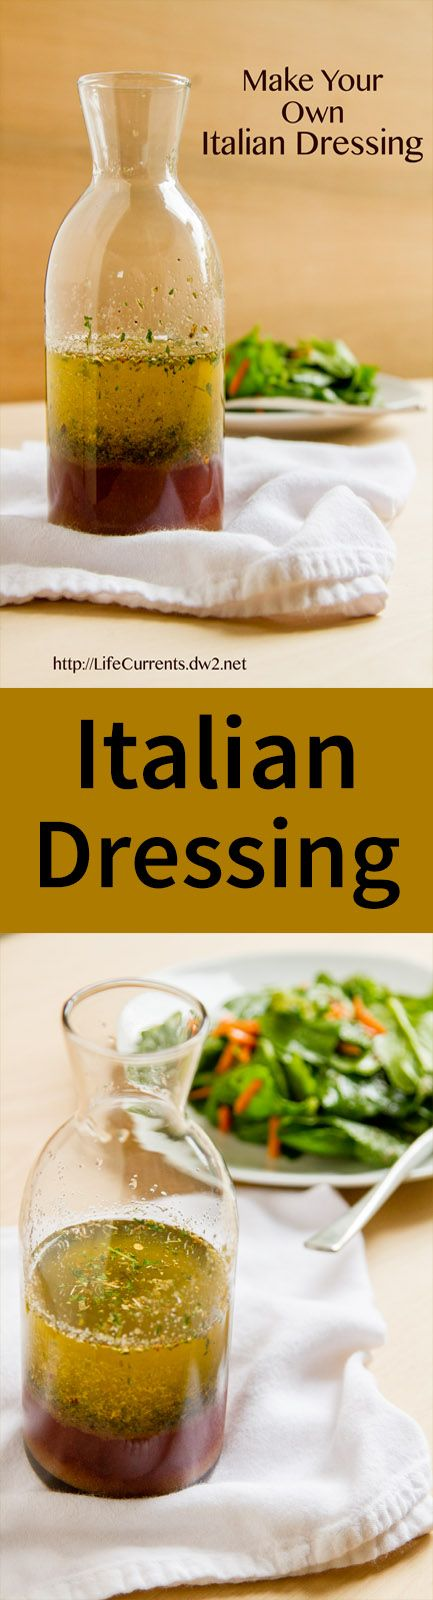 Make your own Italian Dressing! by Life Currents